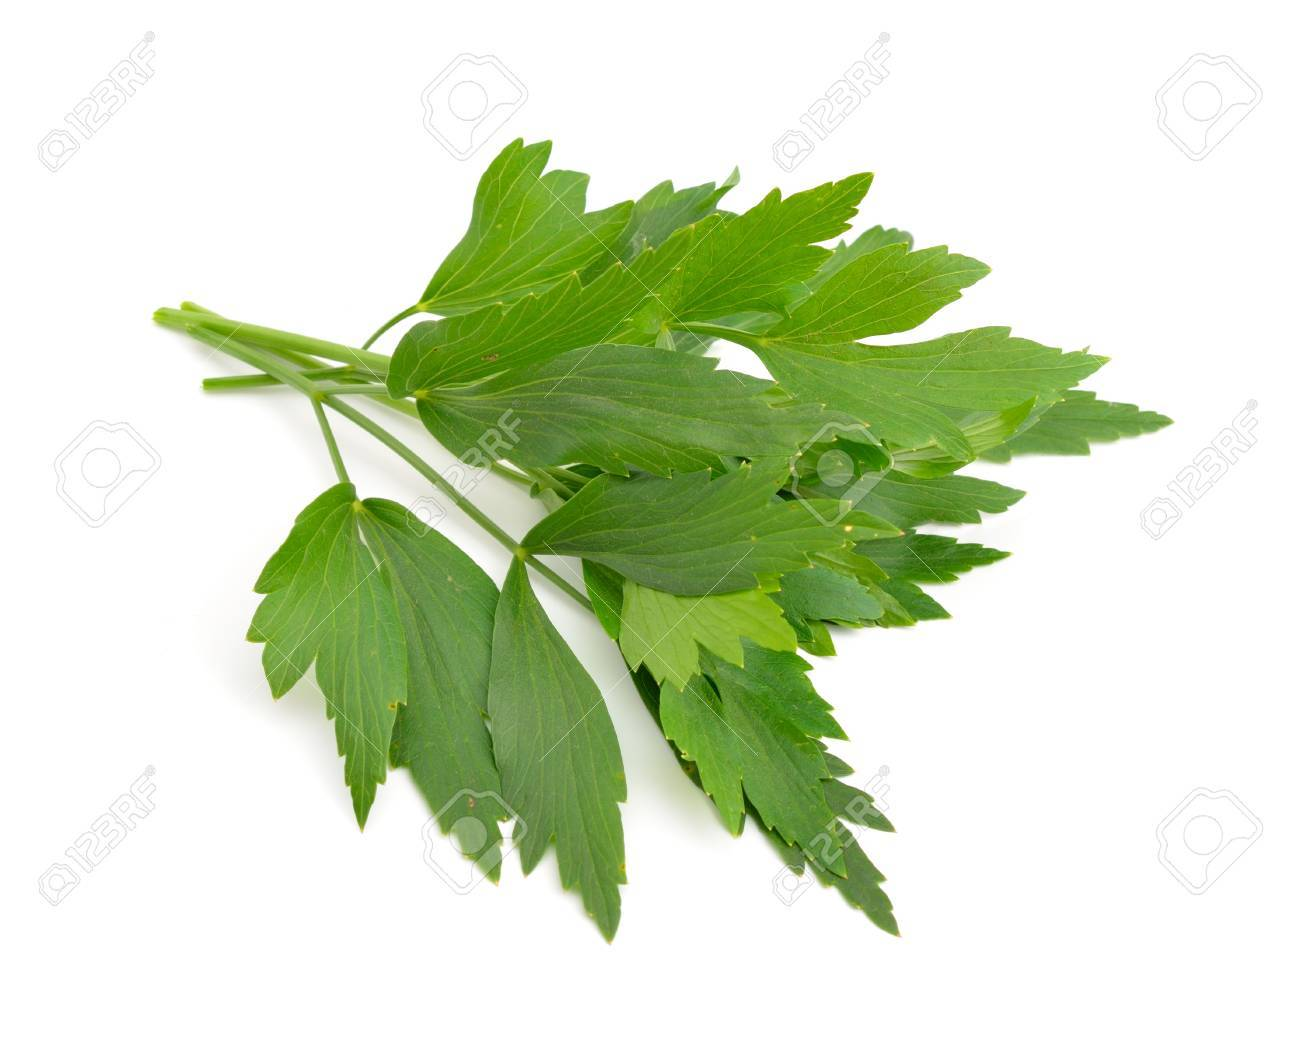 Lovage, Levisticum officinale. Isolated on white backgrounbd. - 71832145